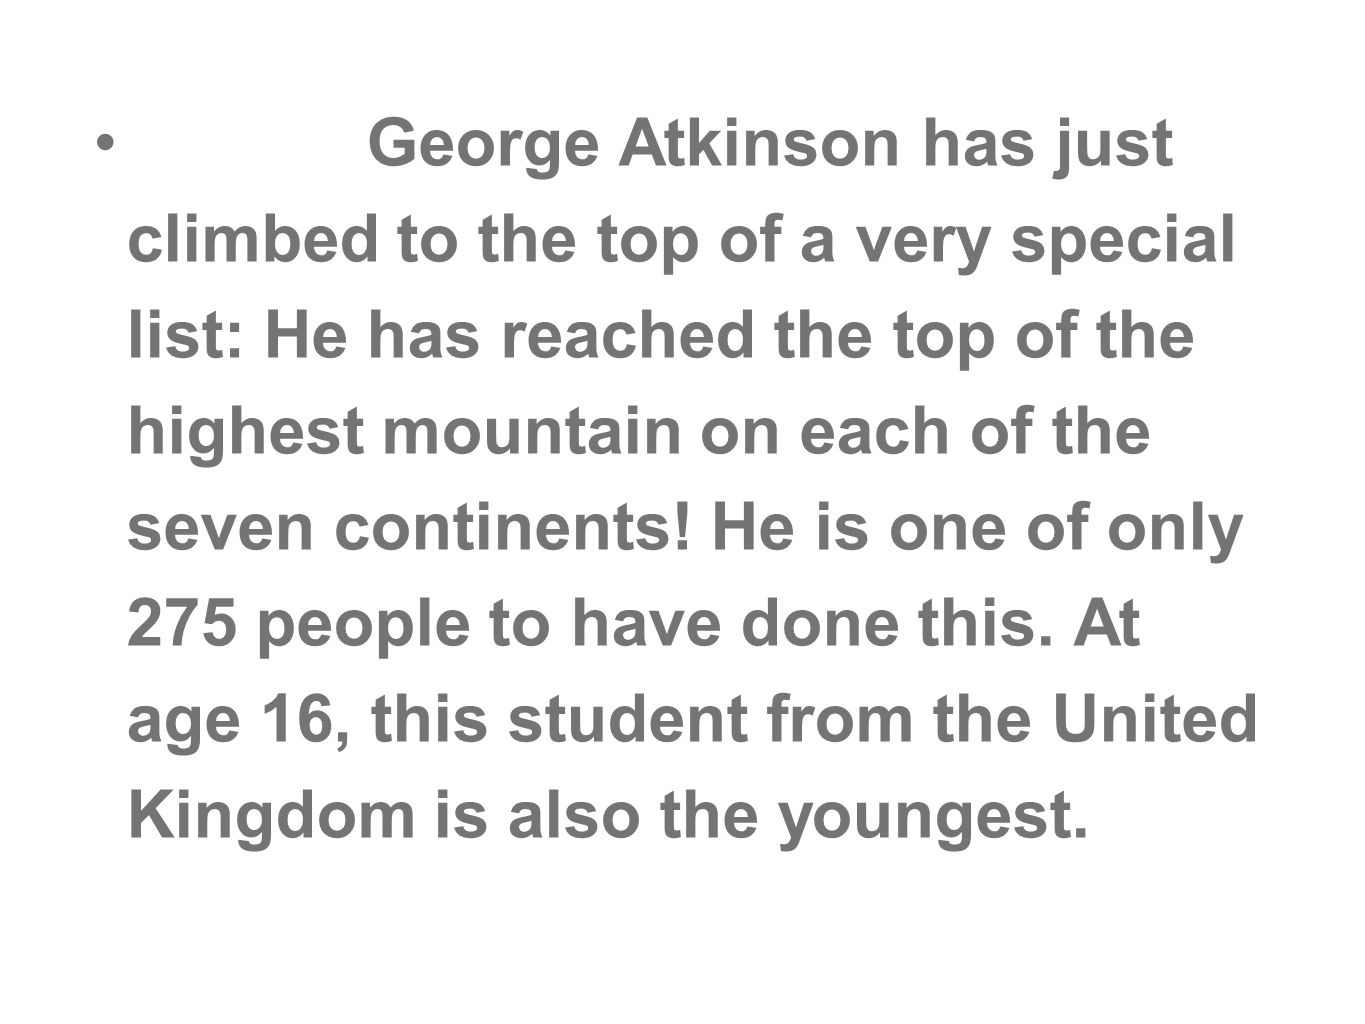 George Atkinson has just climbed to the top of a very special list: He has reached the top of the highest mountain on each of the seven continents.